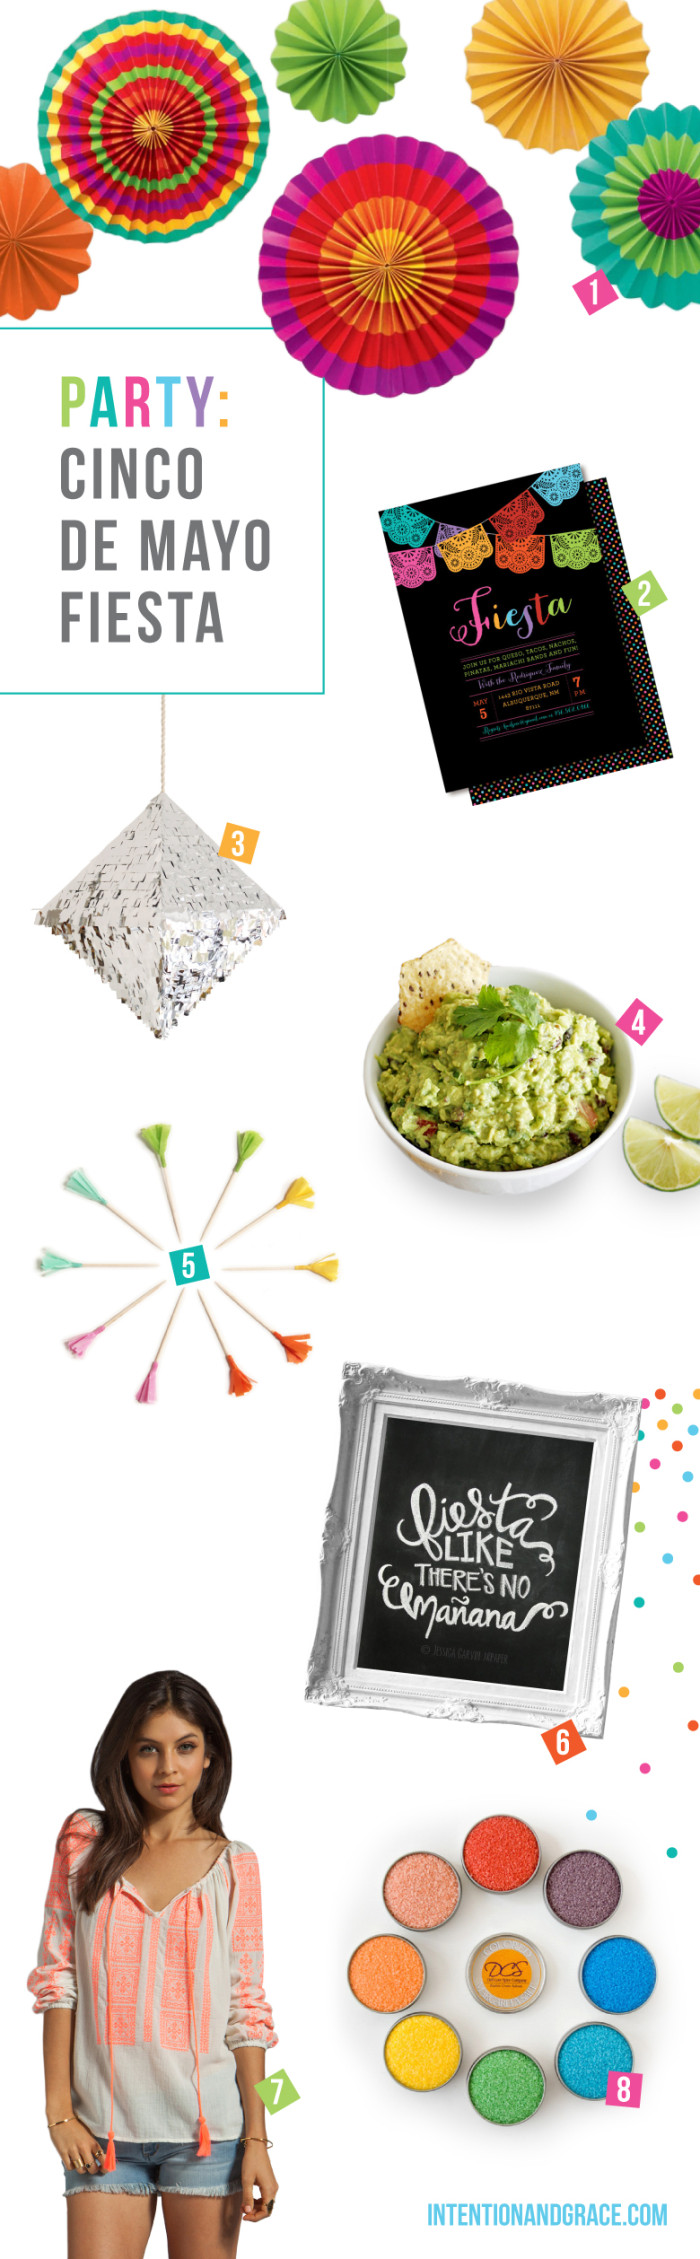 Cinco de Mayo Party Fiesta Ideas for 2014  | Intentionandgrace.com